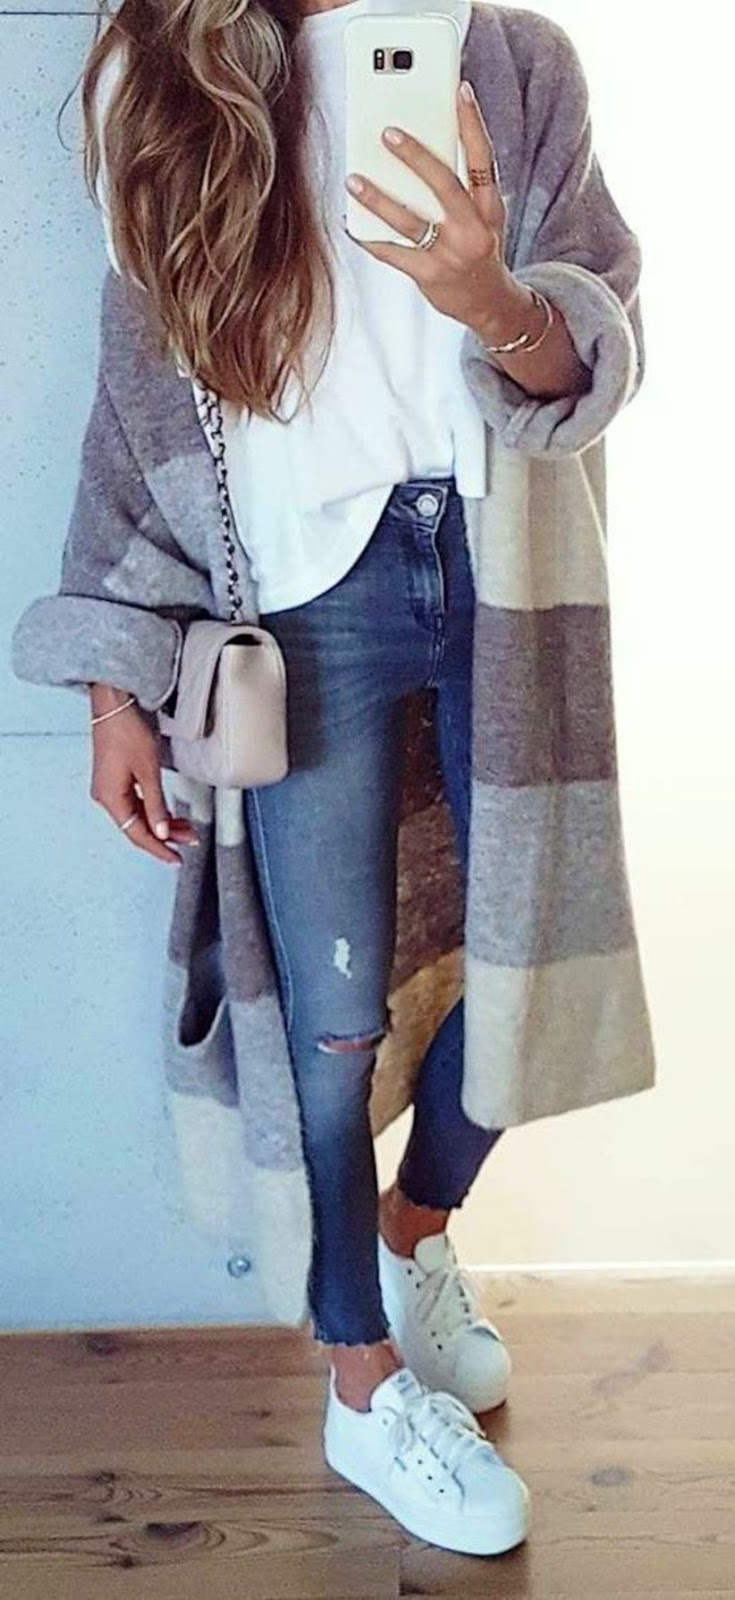 trendy winter outfit / sneakers + skinnies + bag + white top + cashmere cardigan